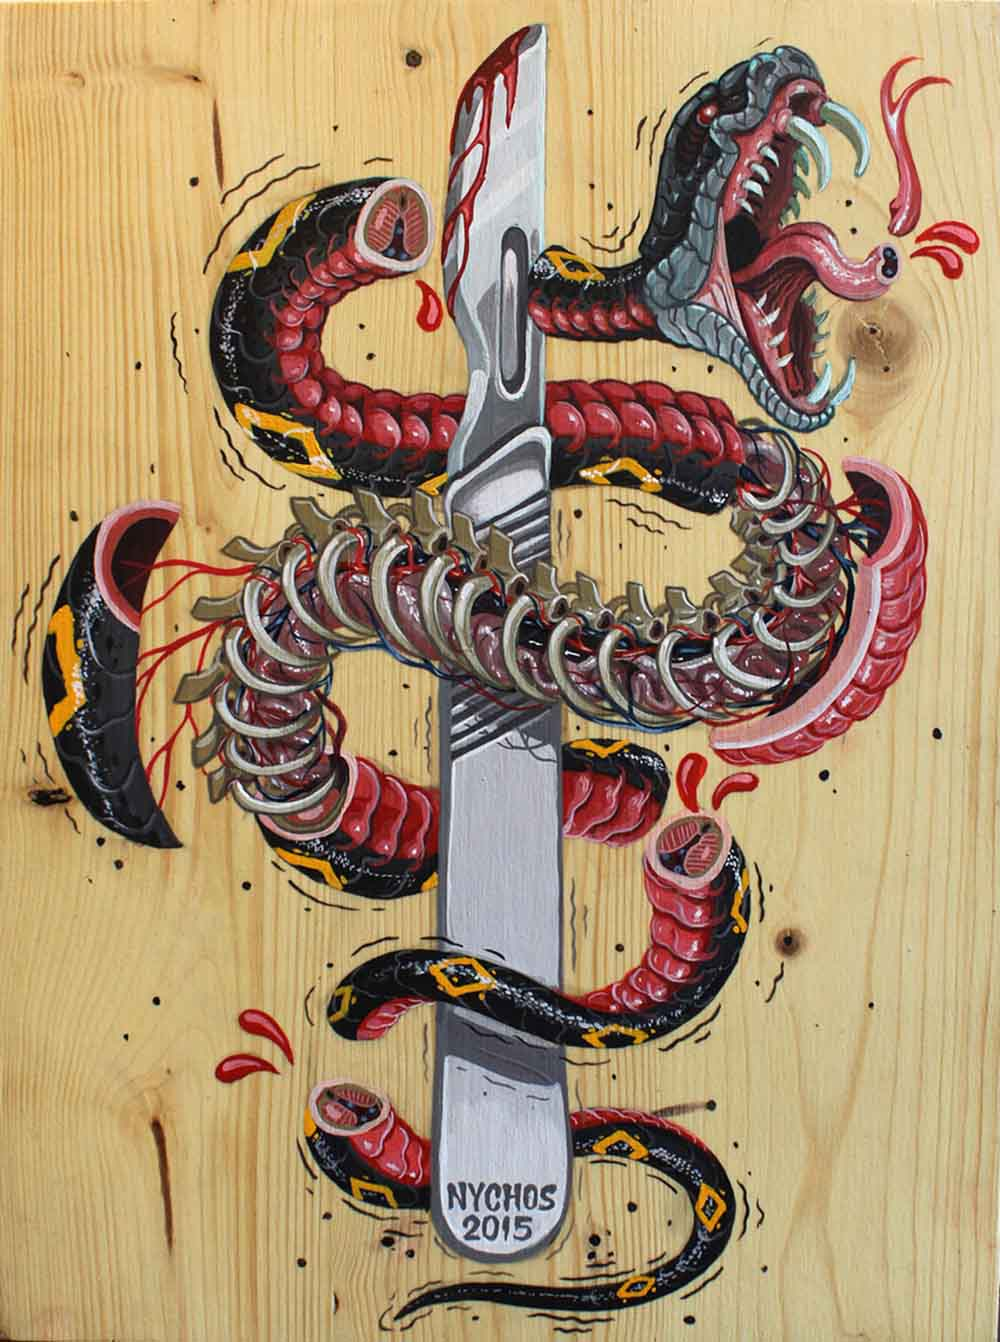 dissected-street-art-nychos-04